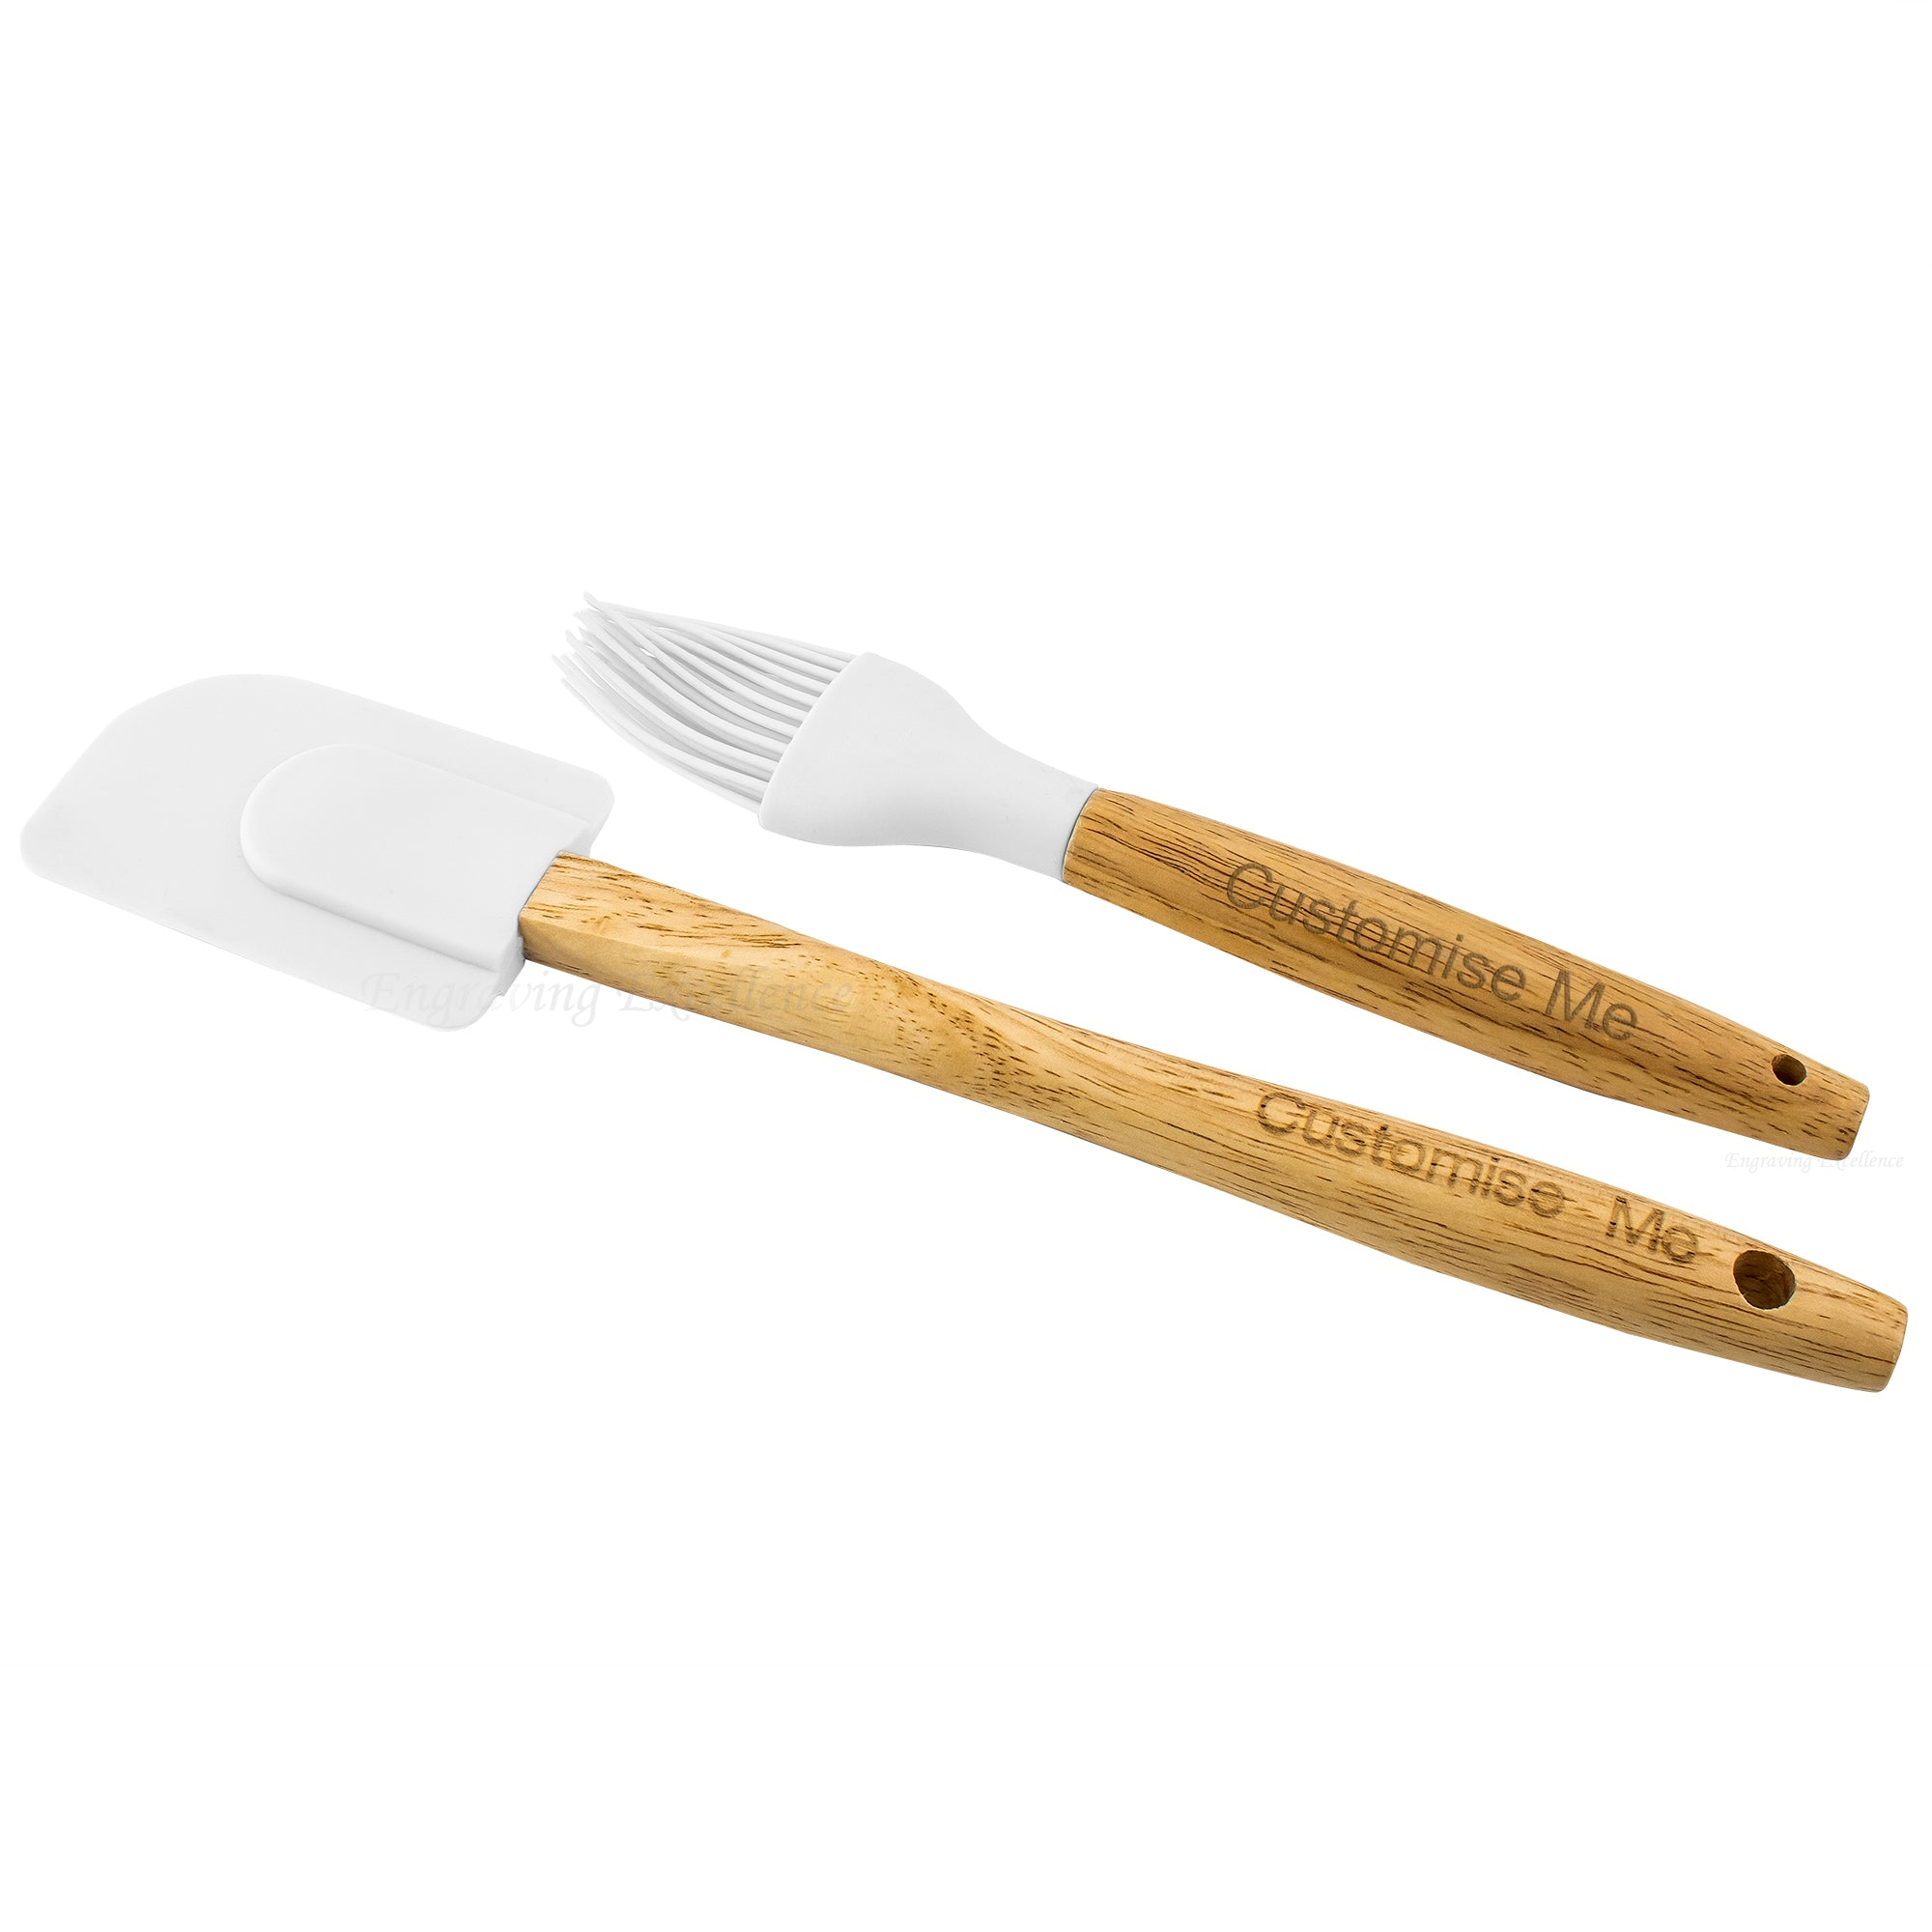 Spatula and a Basting Brush - White Set